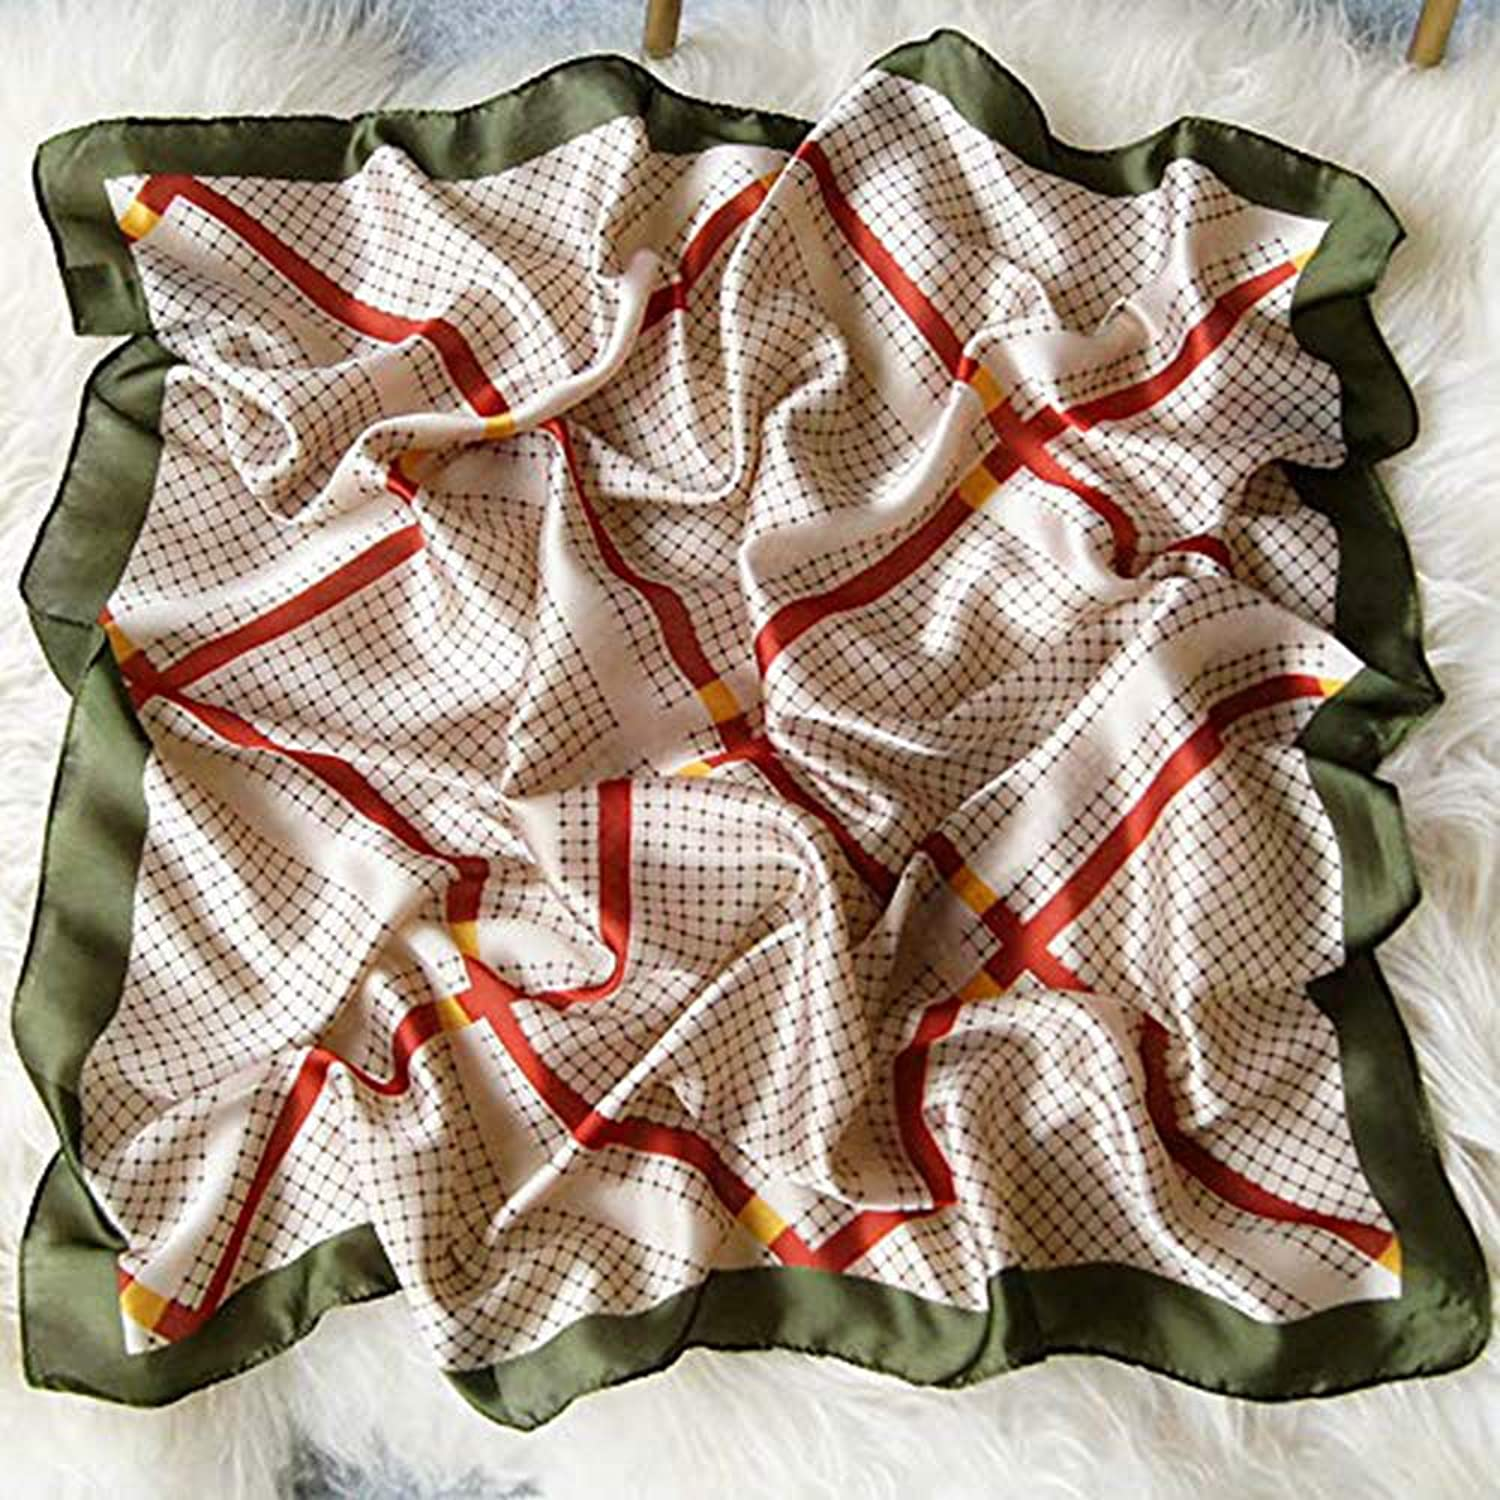 Scarf Women'S Small Square Scarf, Wild New Spring Scarf, Simulation Silk Scarf Chess Board Green